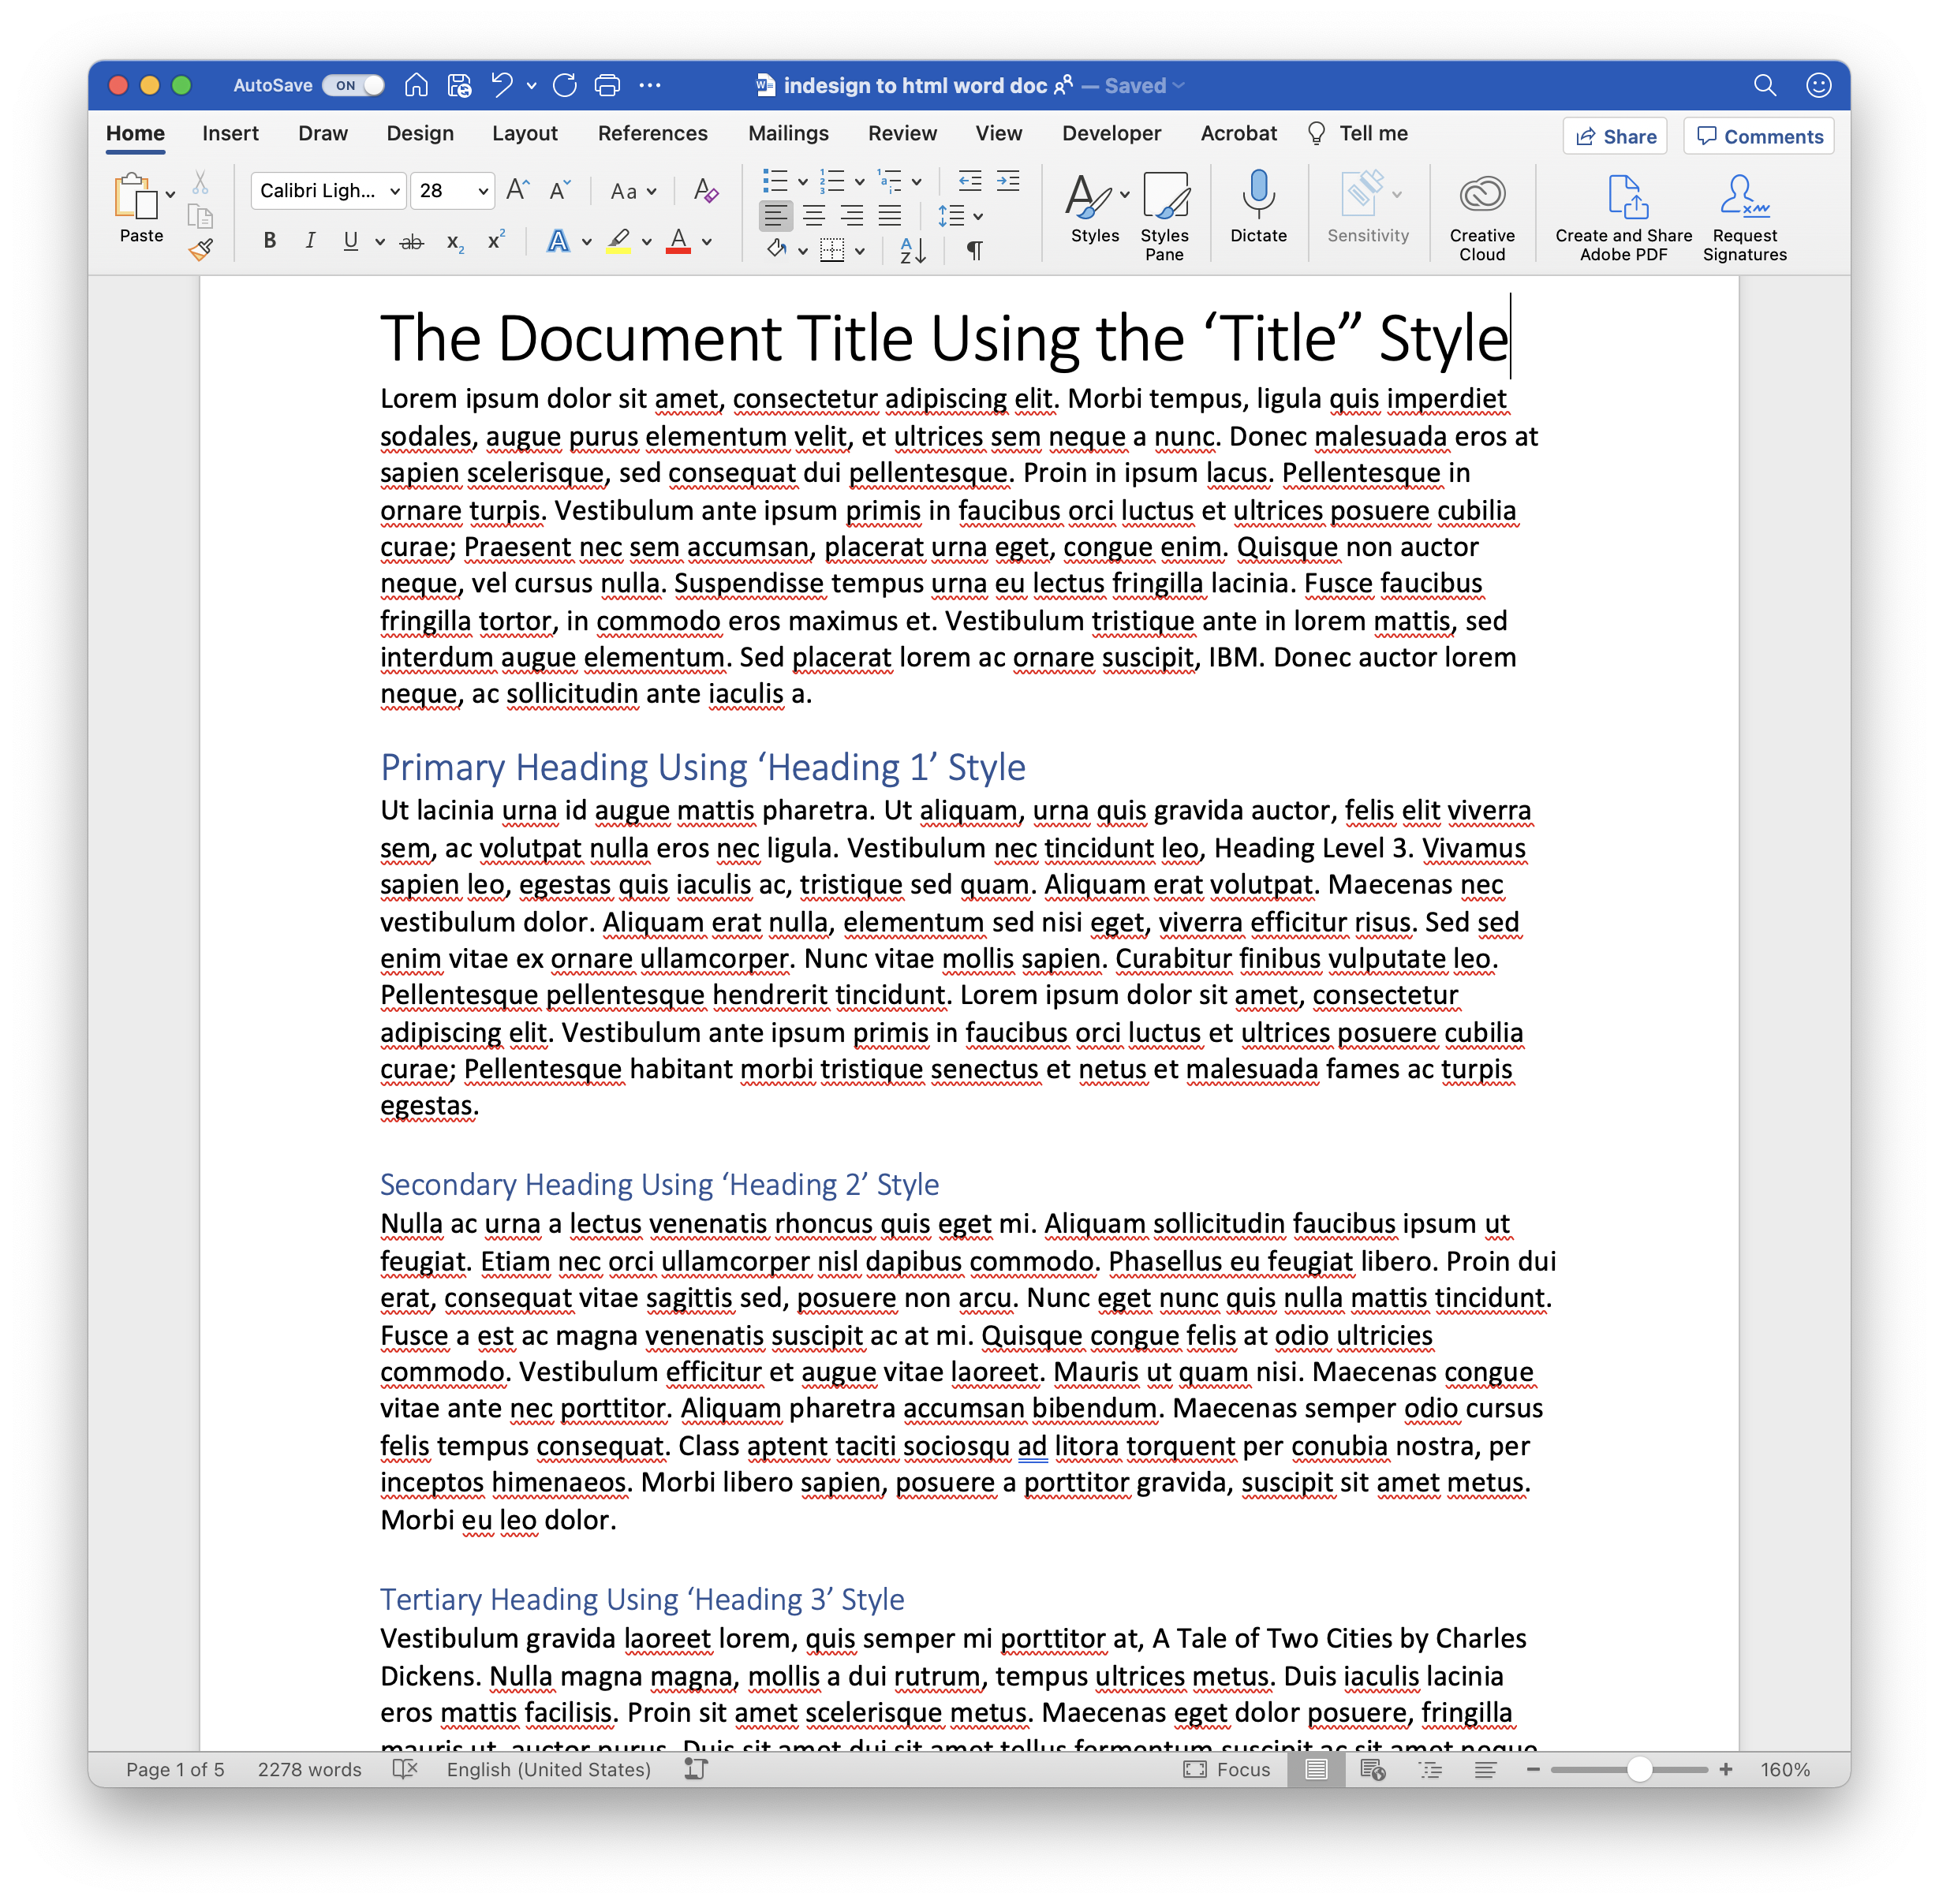 Word doc with Title, Heading 1, Heading 2, Heading 3 and Normal paragraph styles in use.